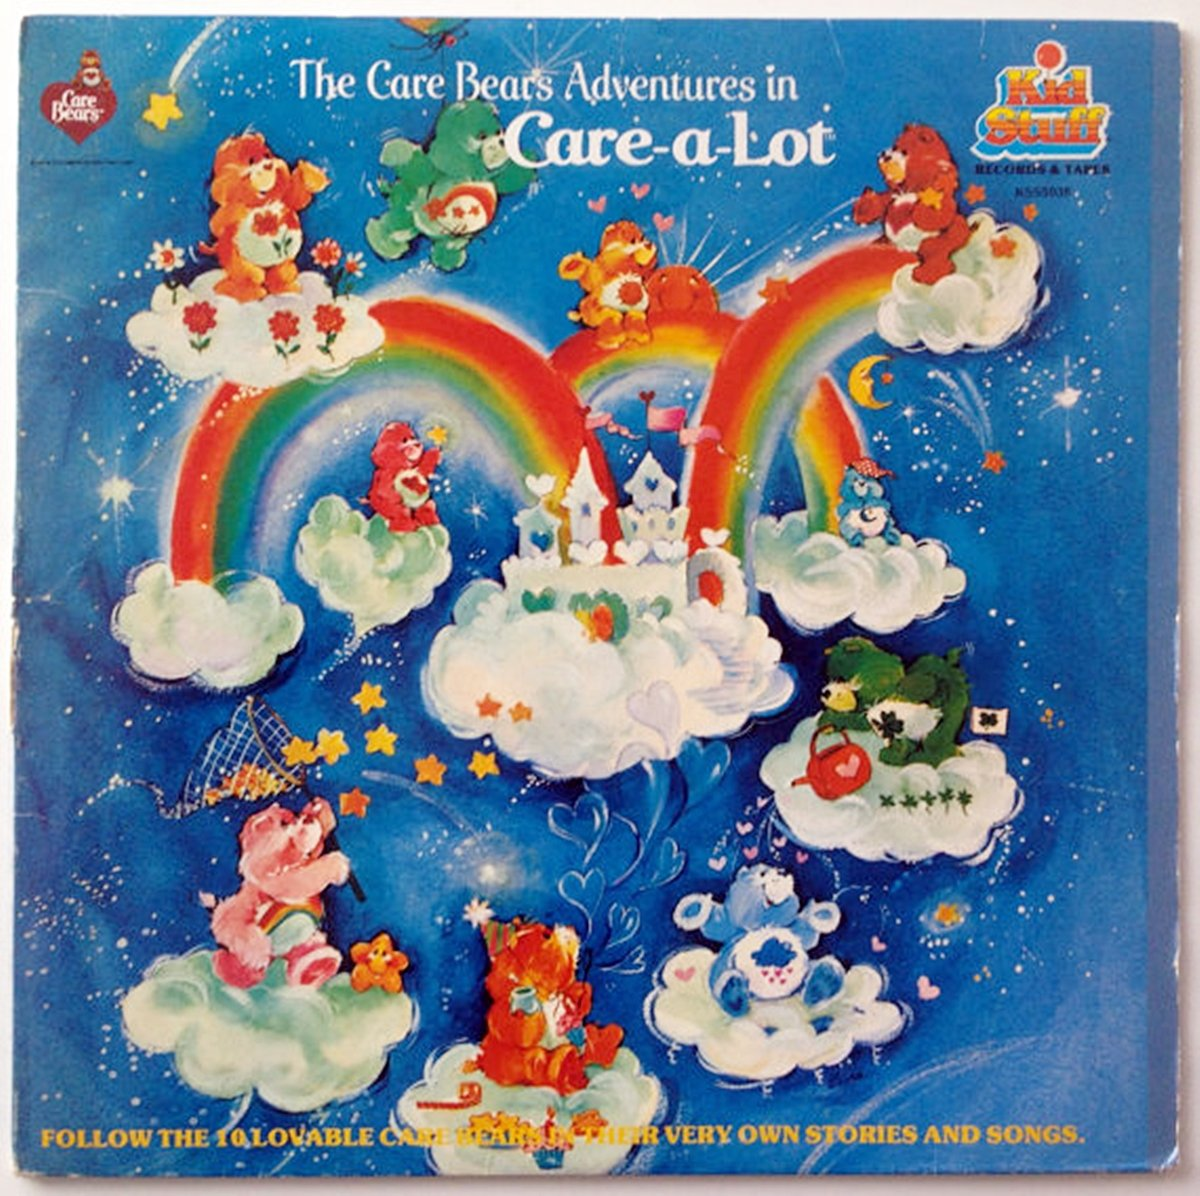 11 7 14 Cute And Cuddly Facts About The Care Bears